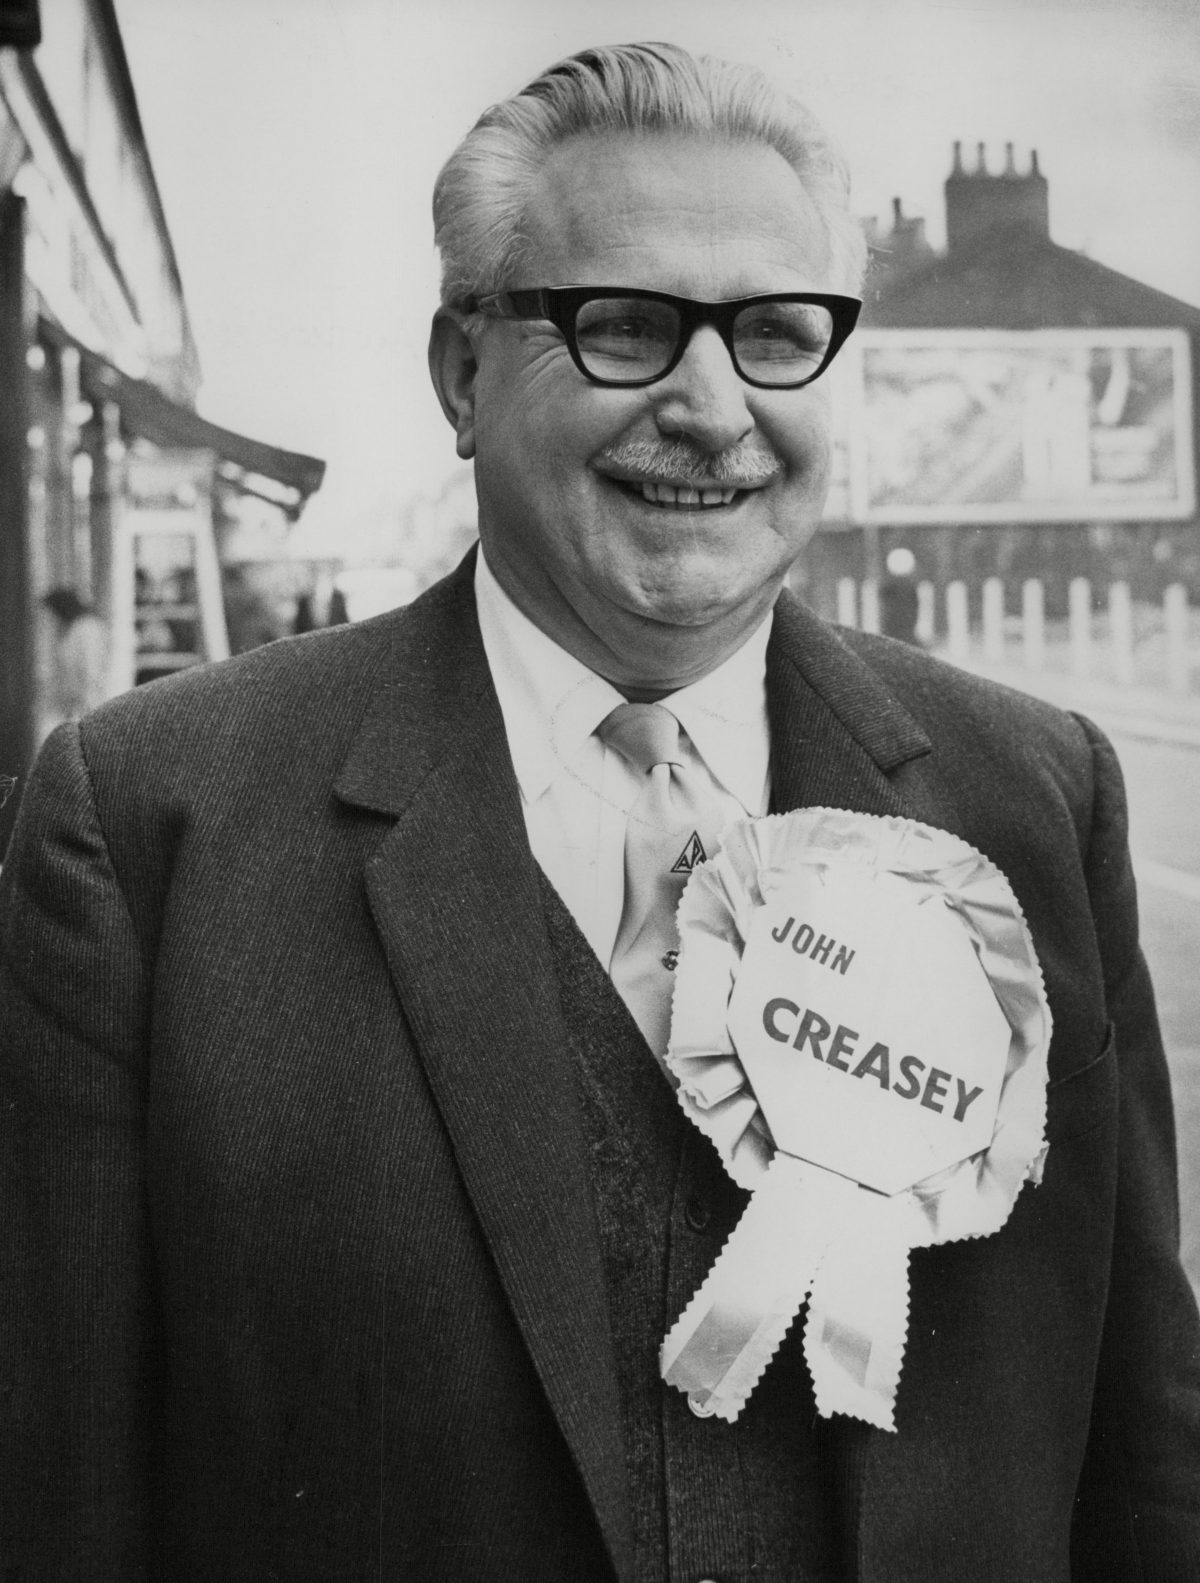 John Creasey Author & Writer Campaigning For The All Party Alliance At The Gorton By-election. 31 Oct 1967